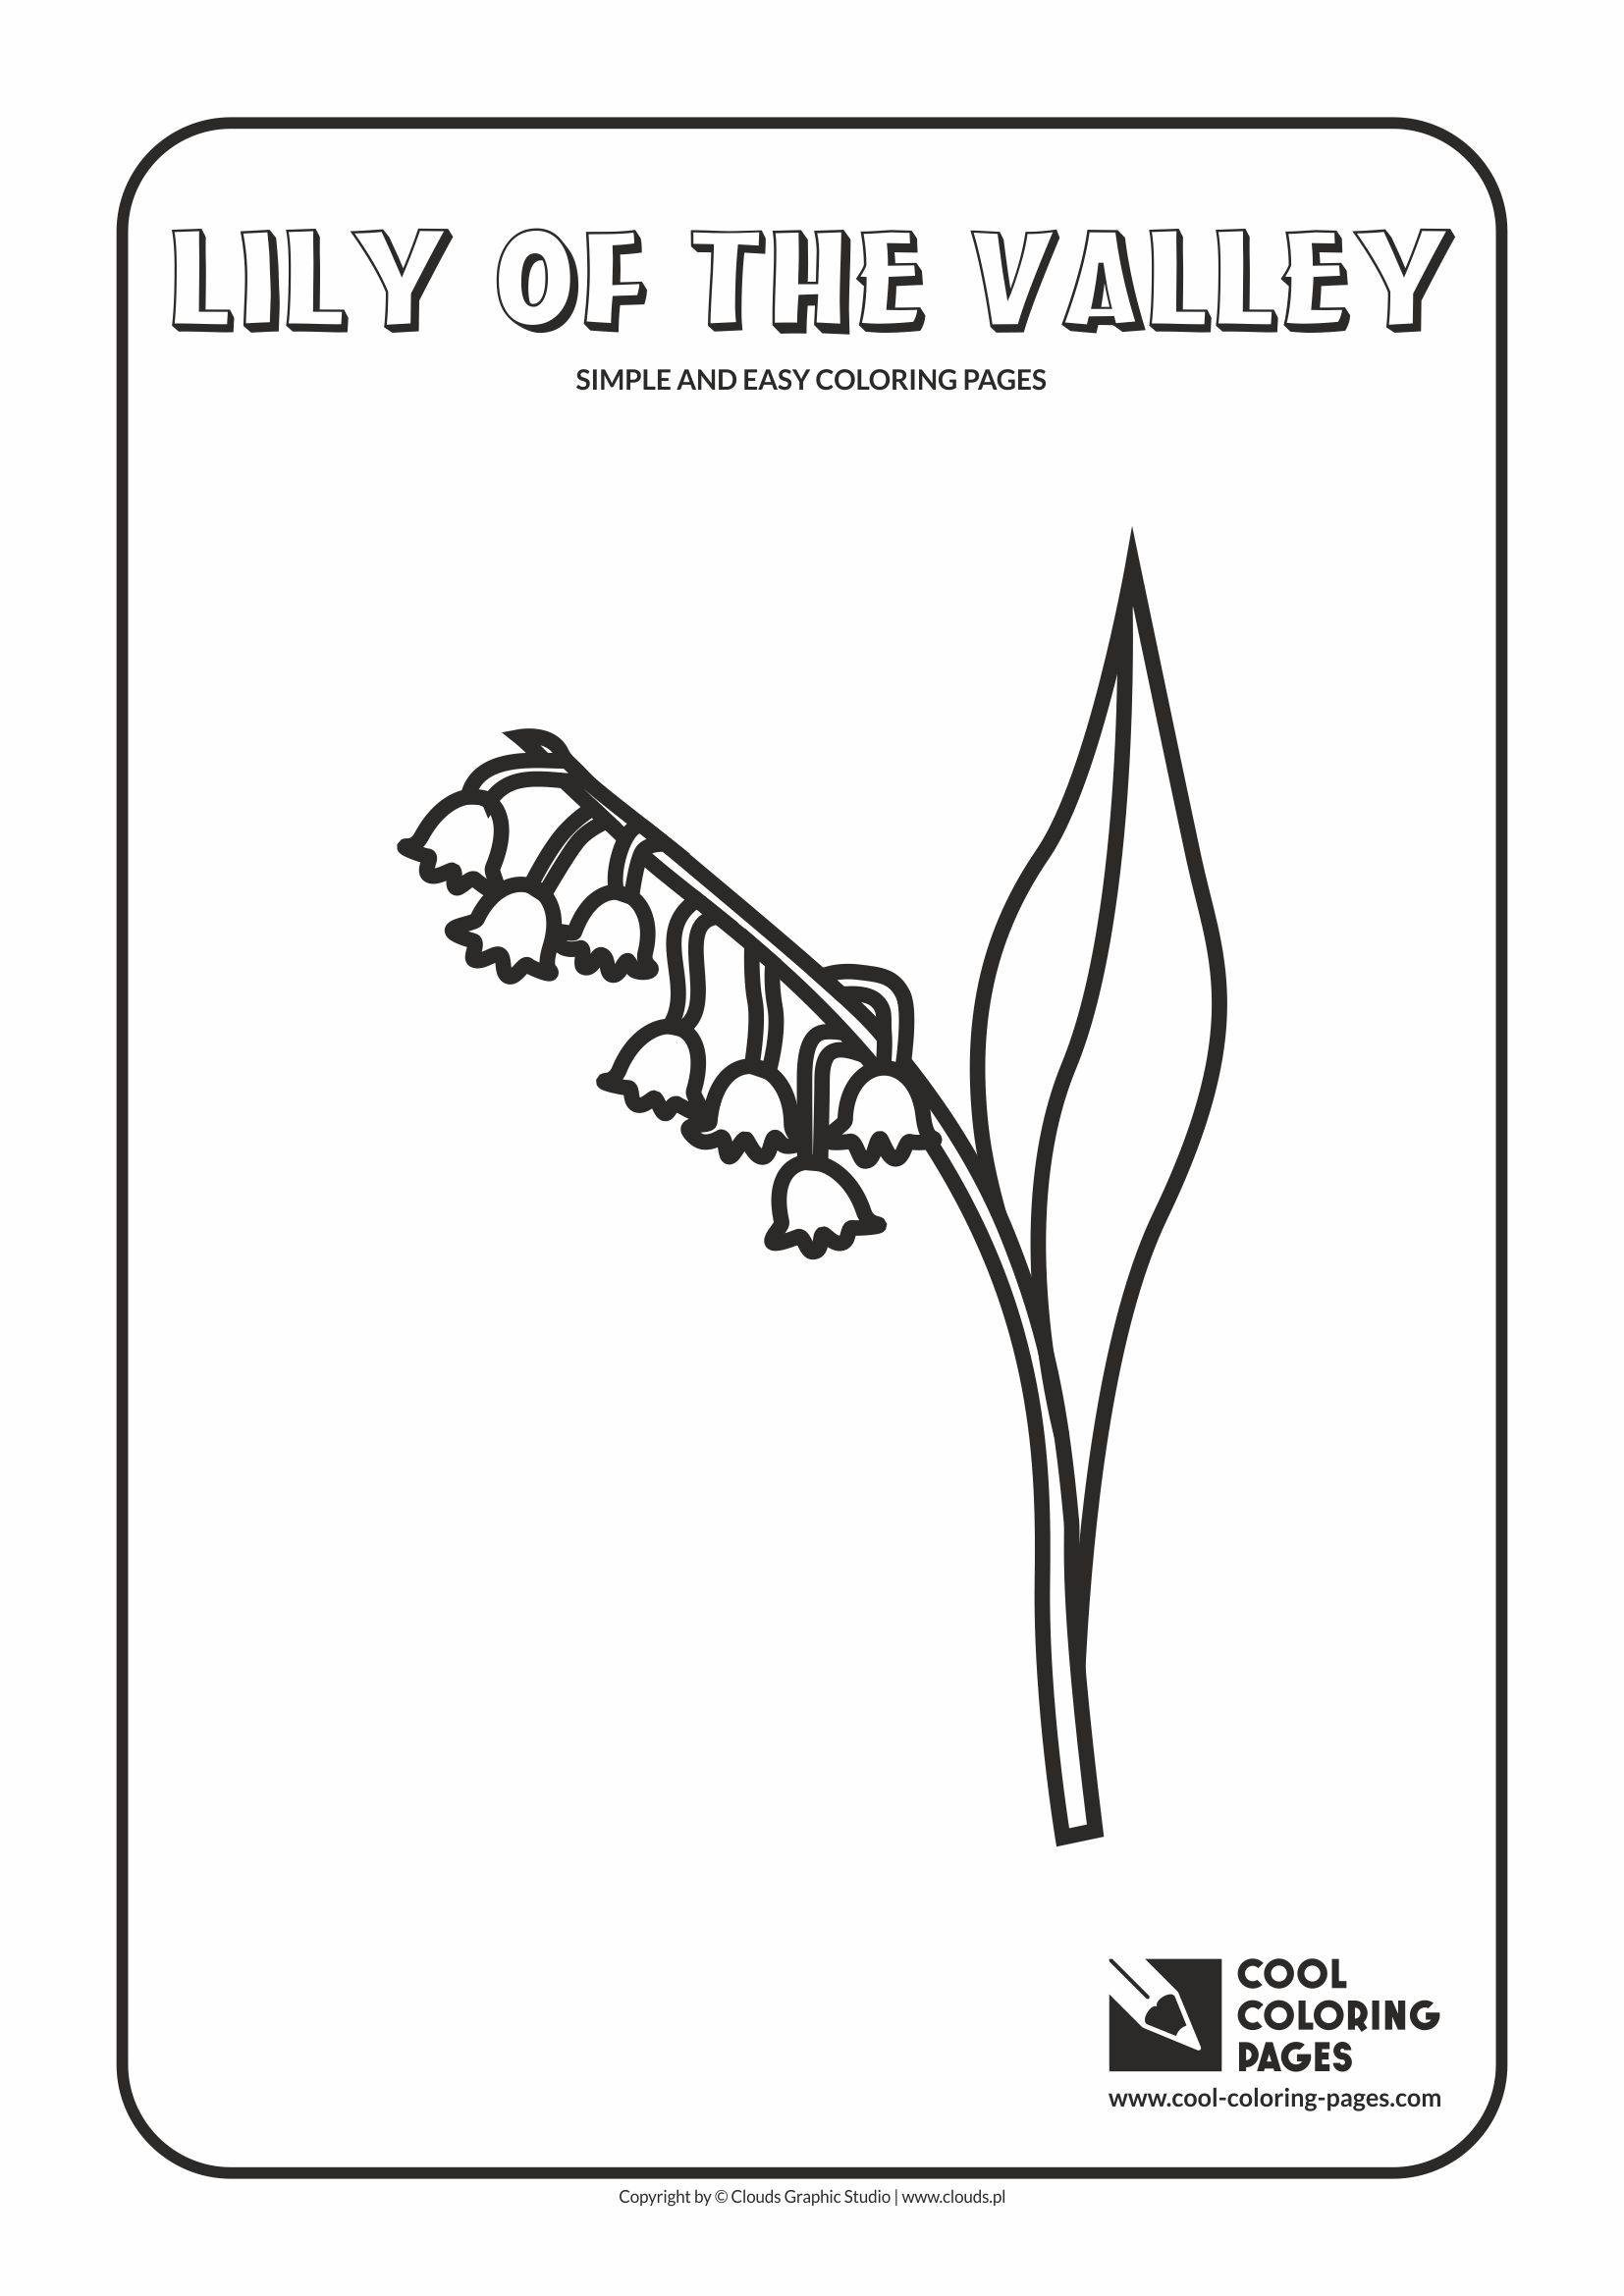 Simple and easy coloring pages for toddlers - Lily of the valley